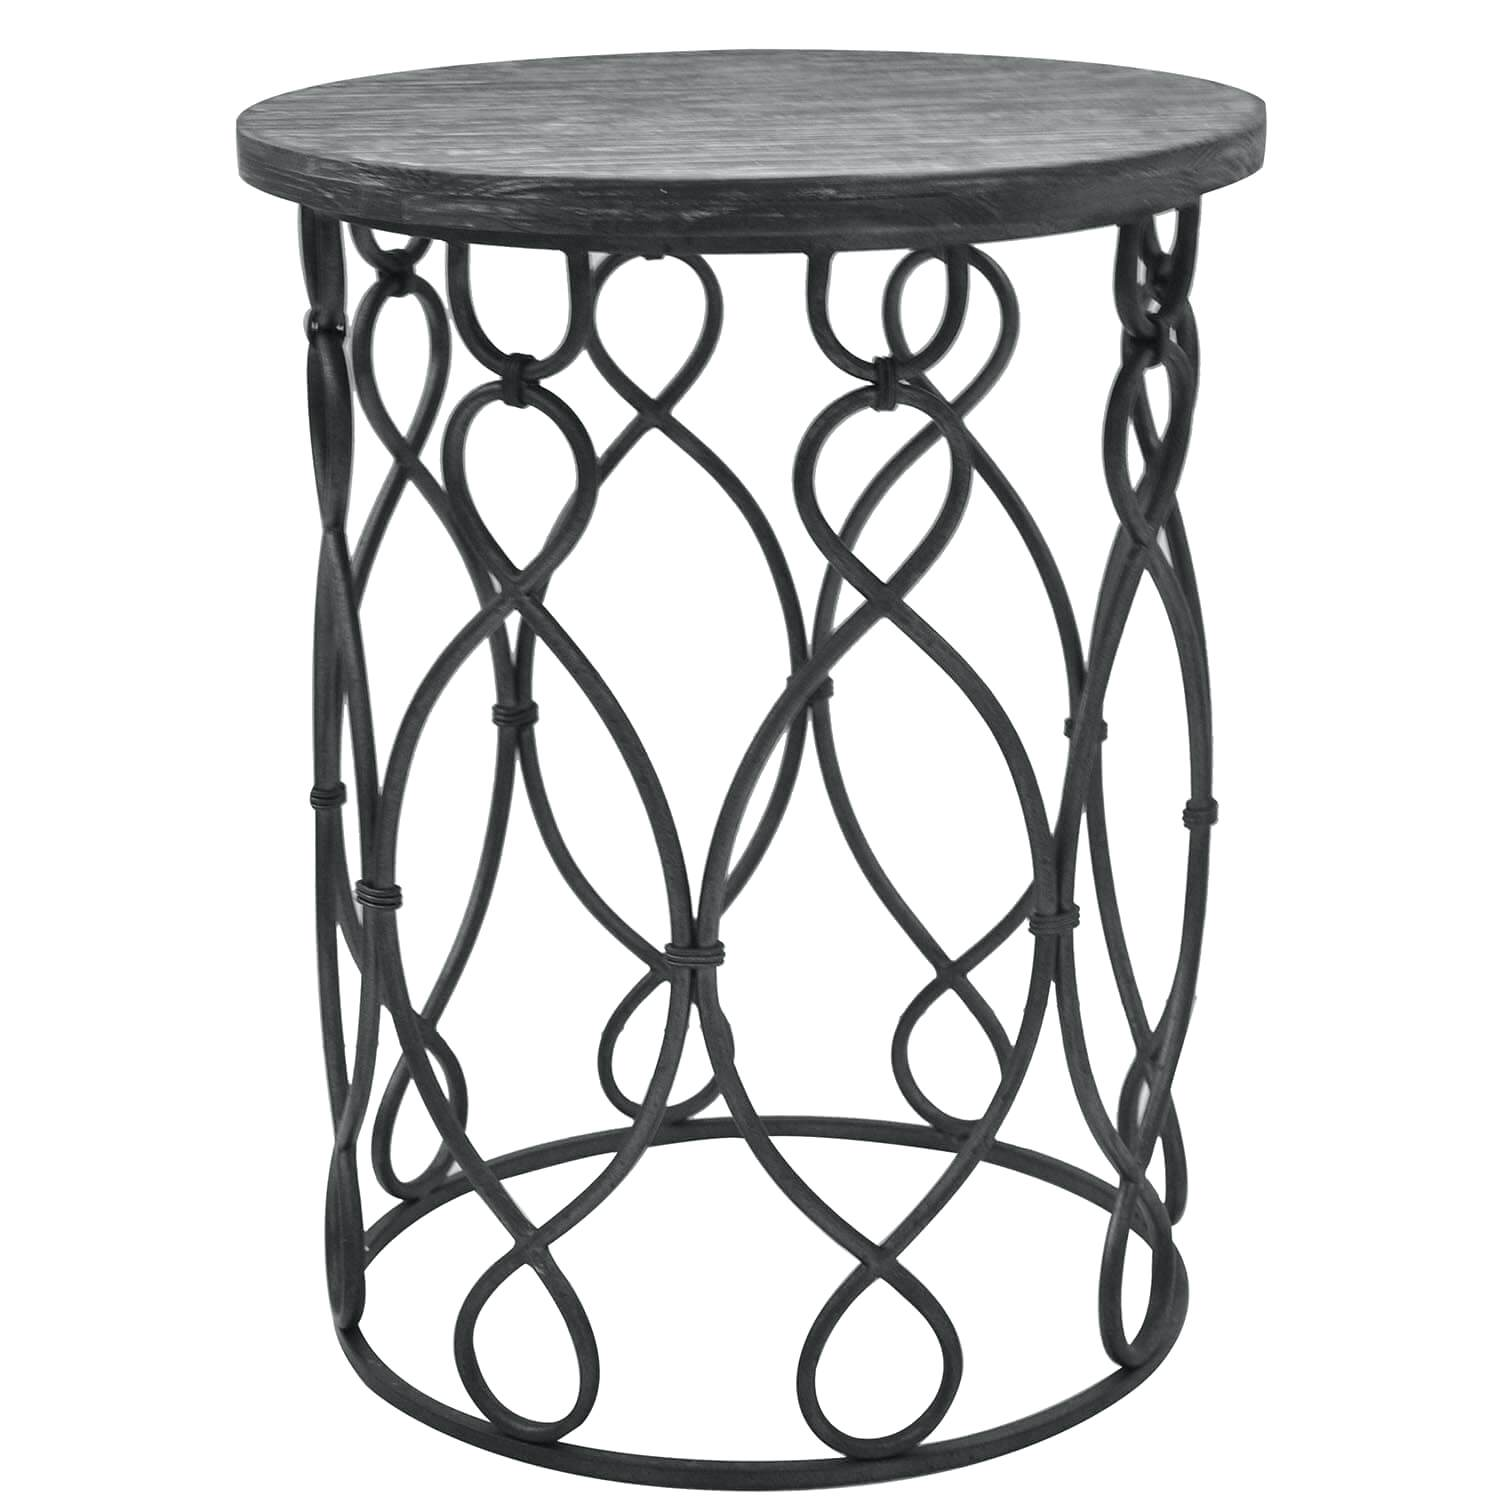 metal accent table small grand junction wood and target outdoor carpet door threshold rectangle mirrored coffee antique side styles nautical lighting ideas black white patio